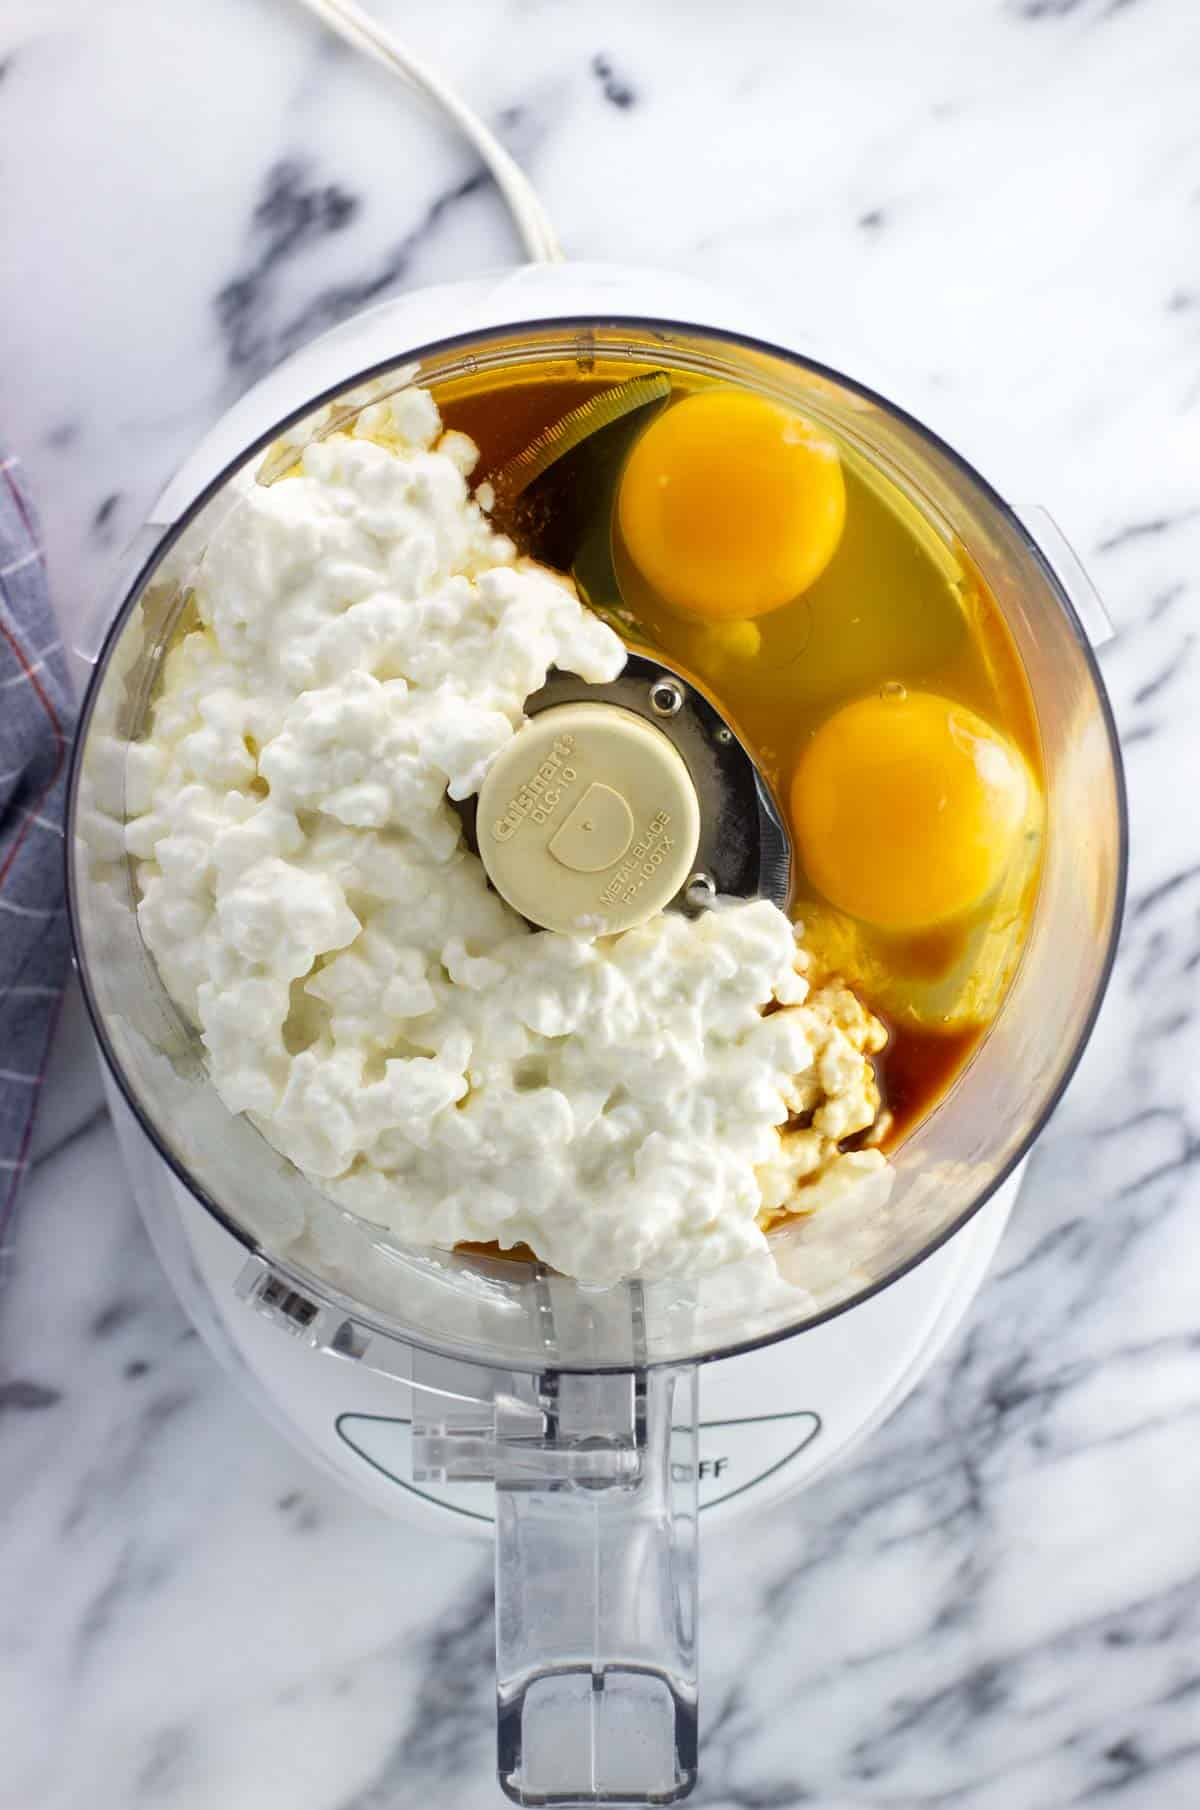 Cottage cheese, eggs, maple syrup, and vanilla extract added to the bowl of a food processor.